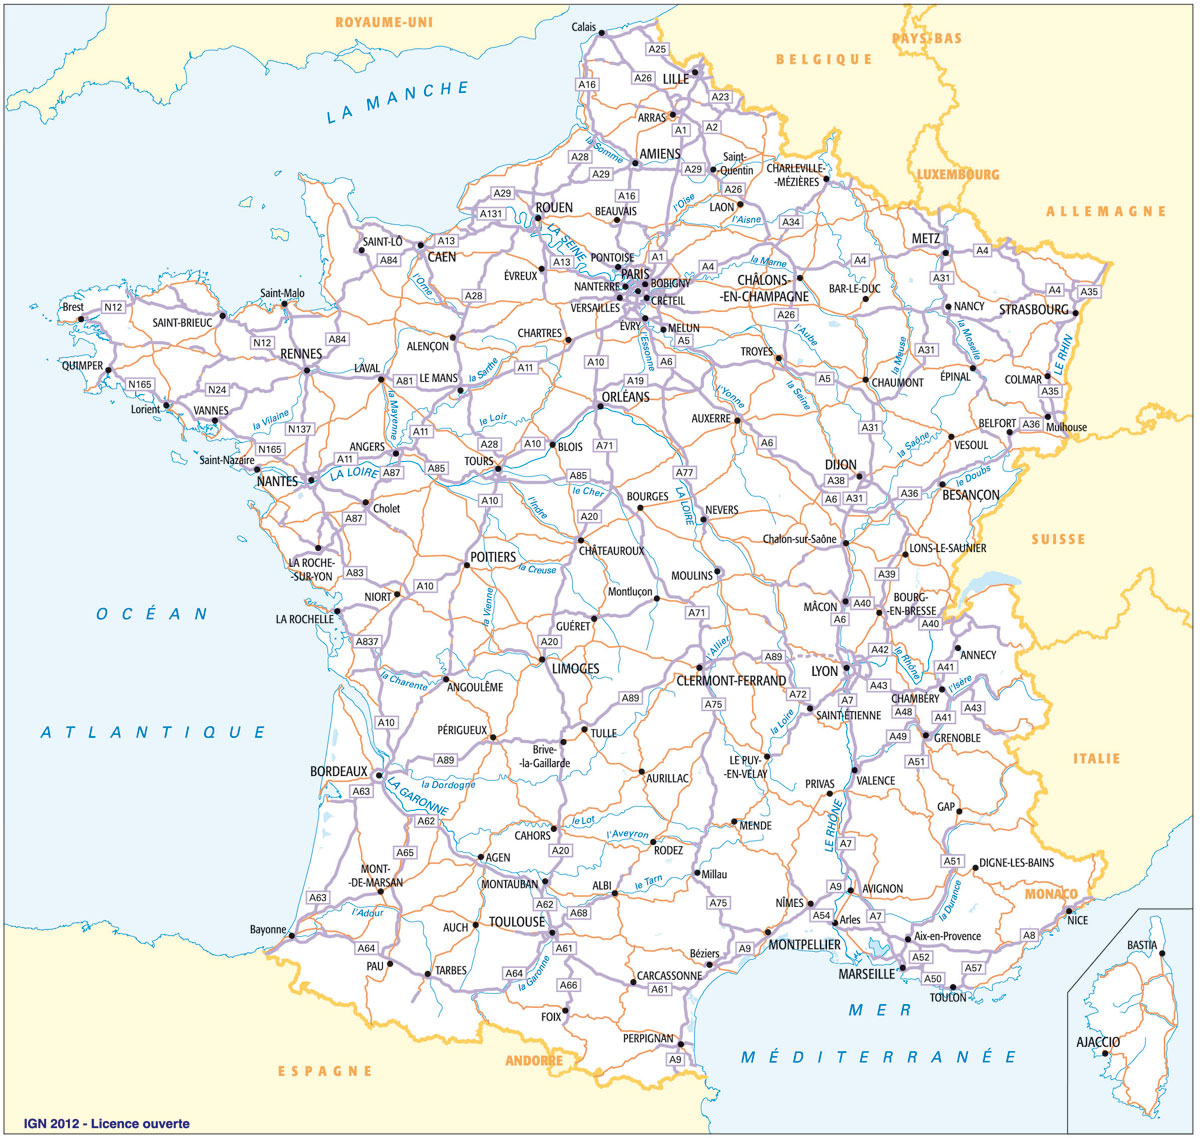 carte geographique france - Image